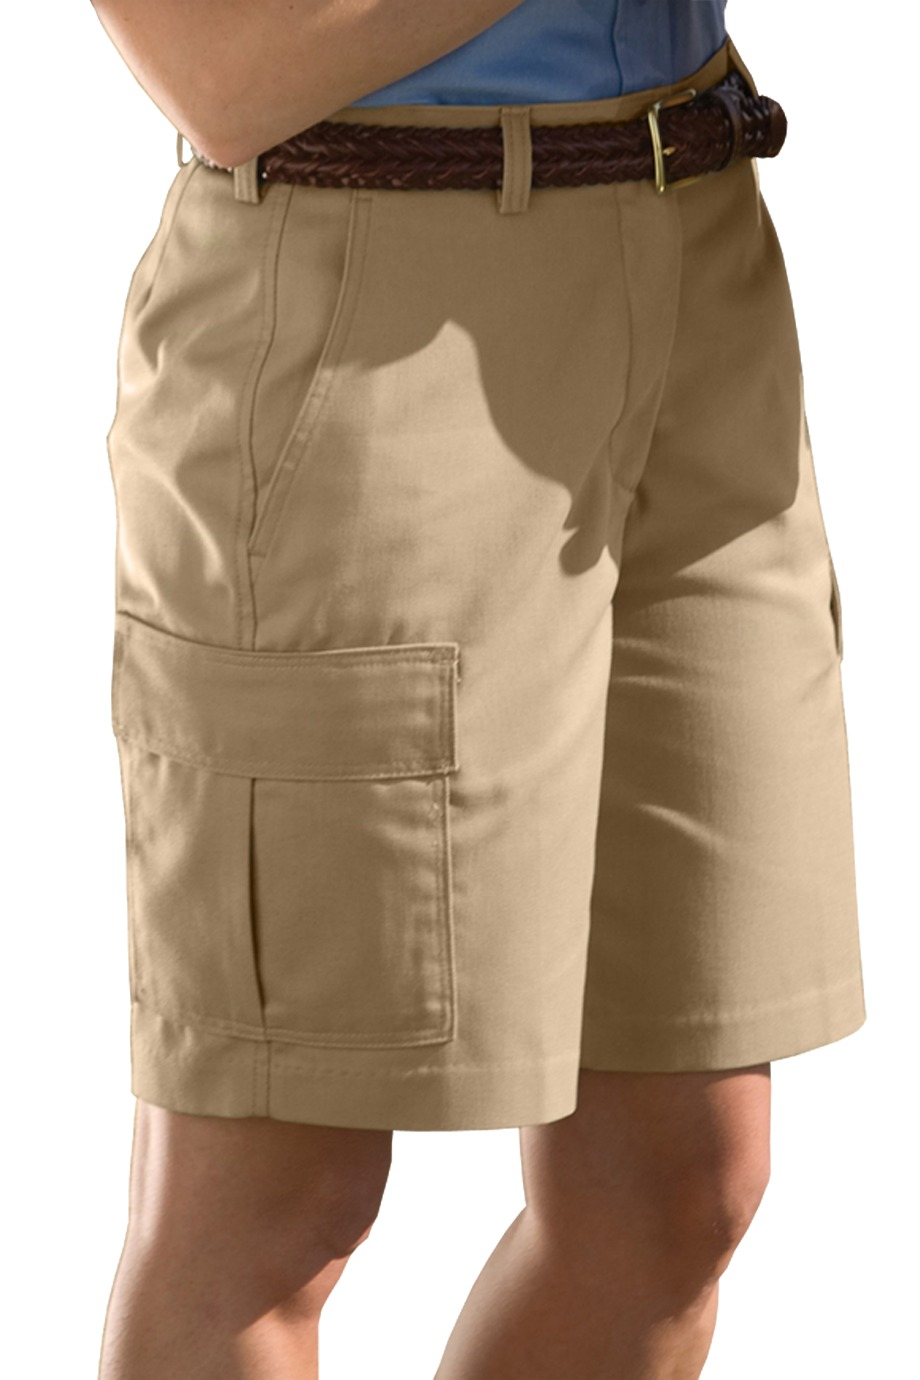 Edwards Garment 8473 - Women's Cargo Short